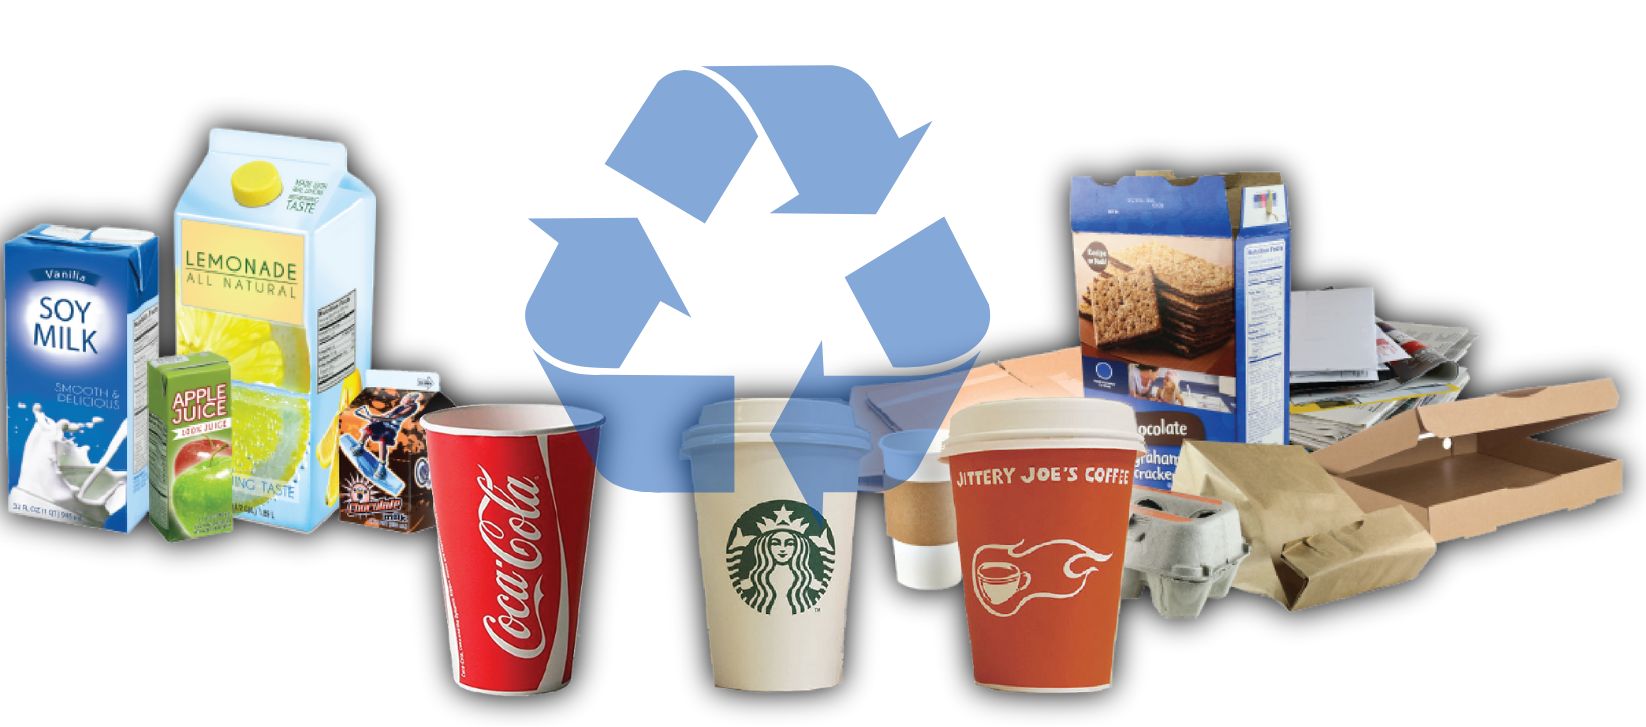 Paper Cups are recyclable